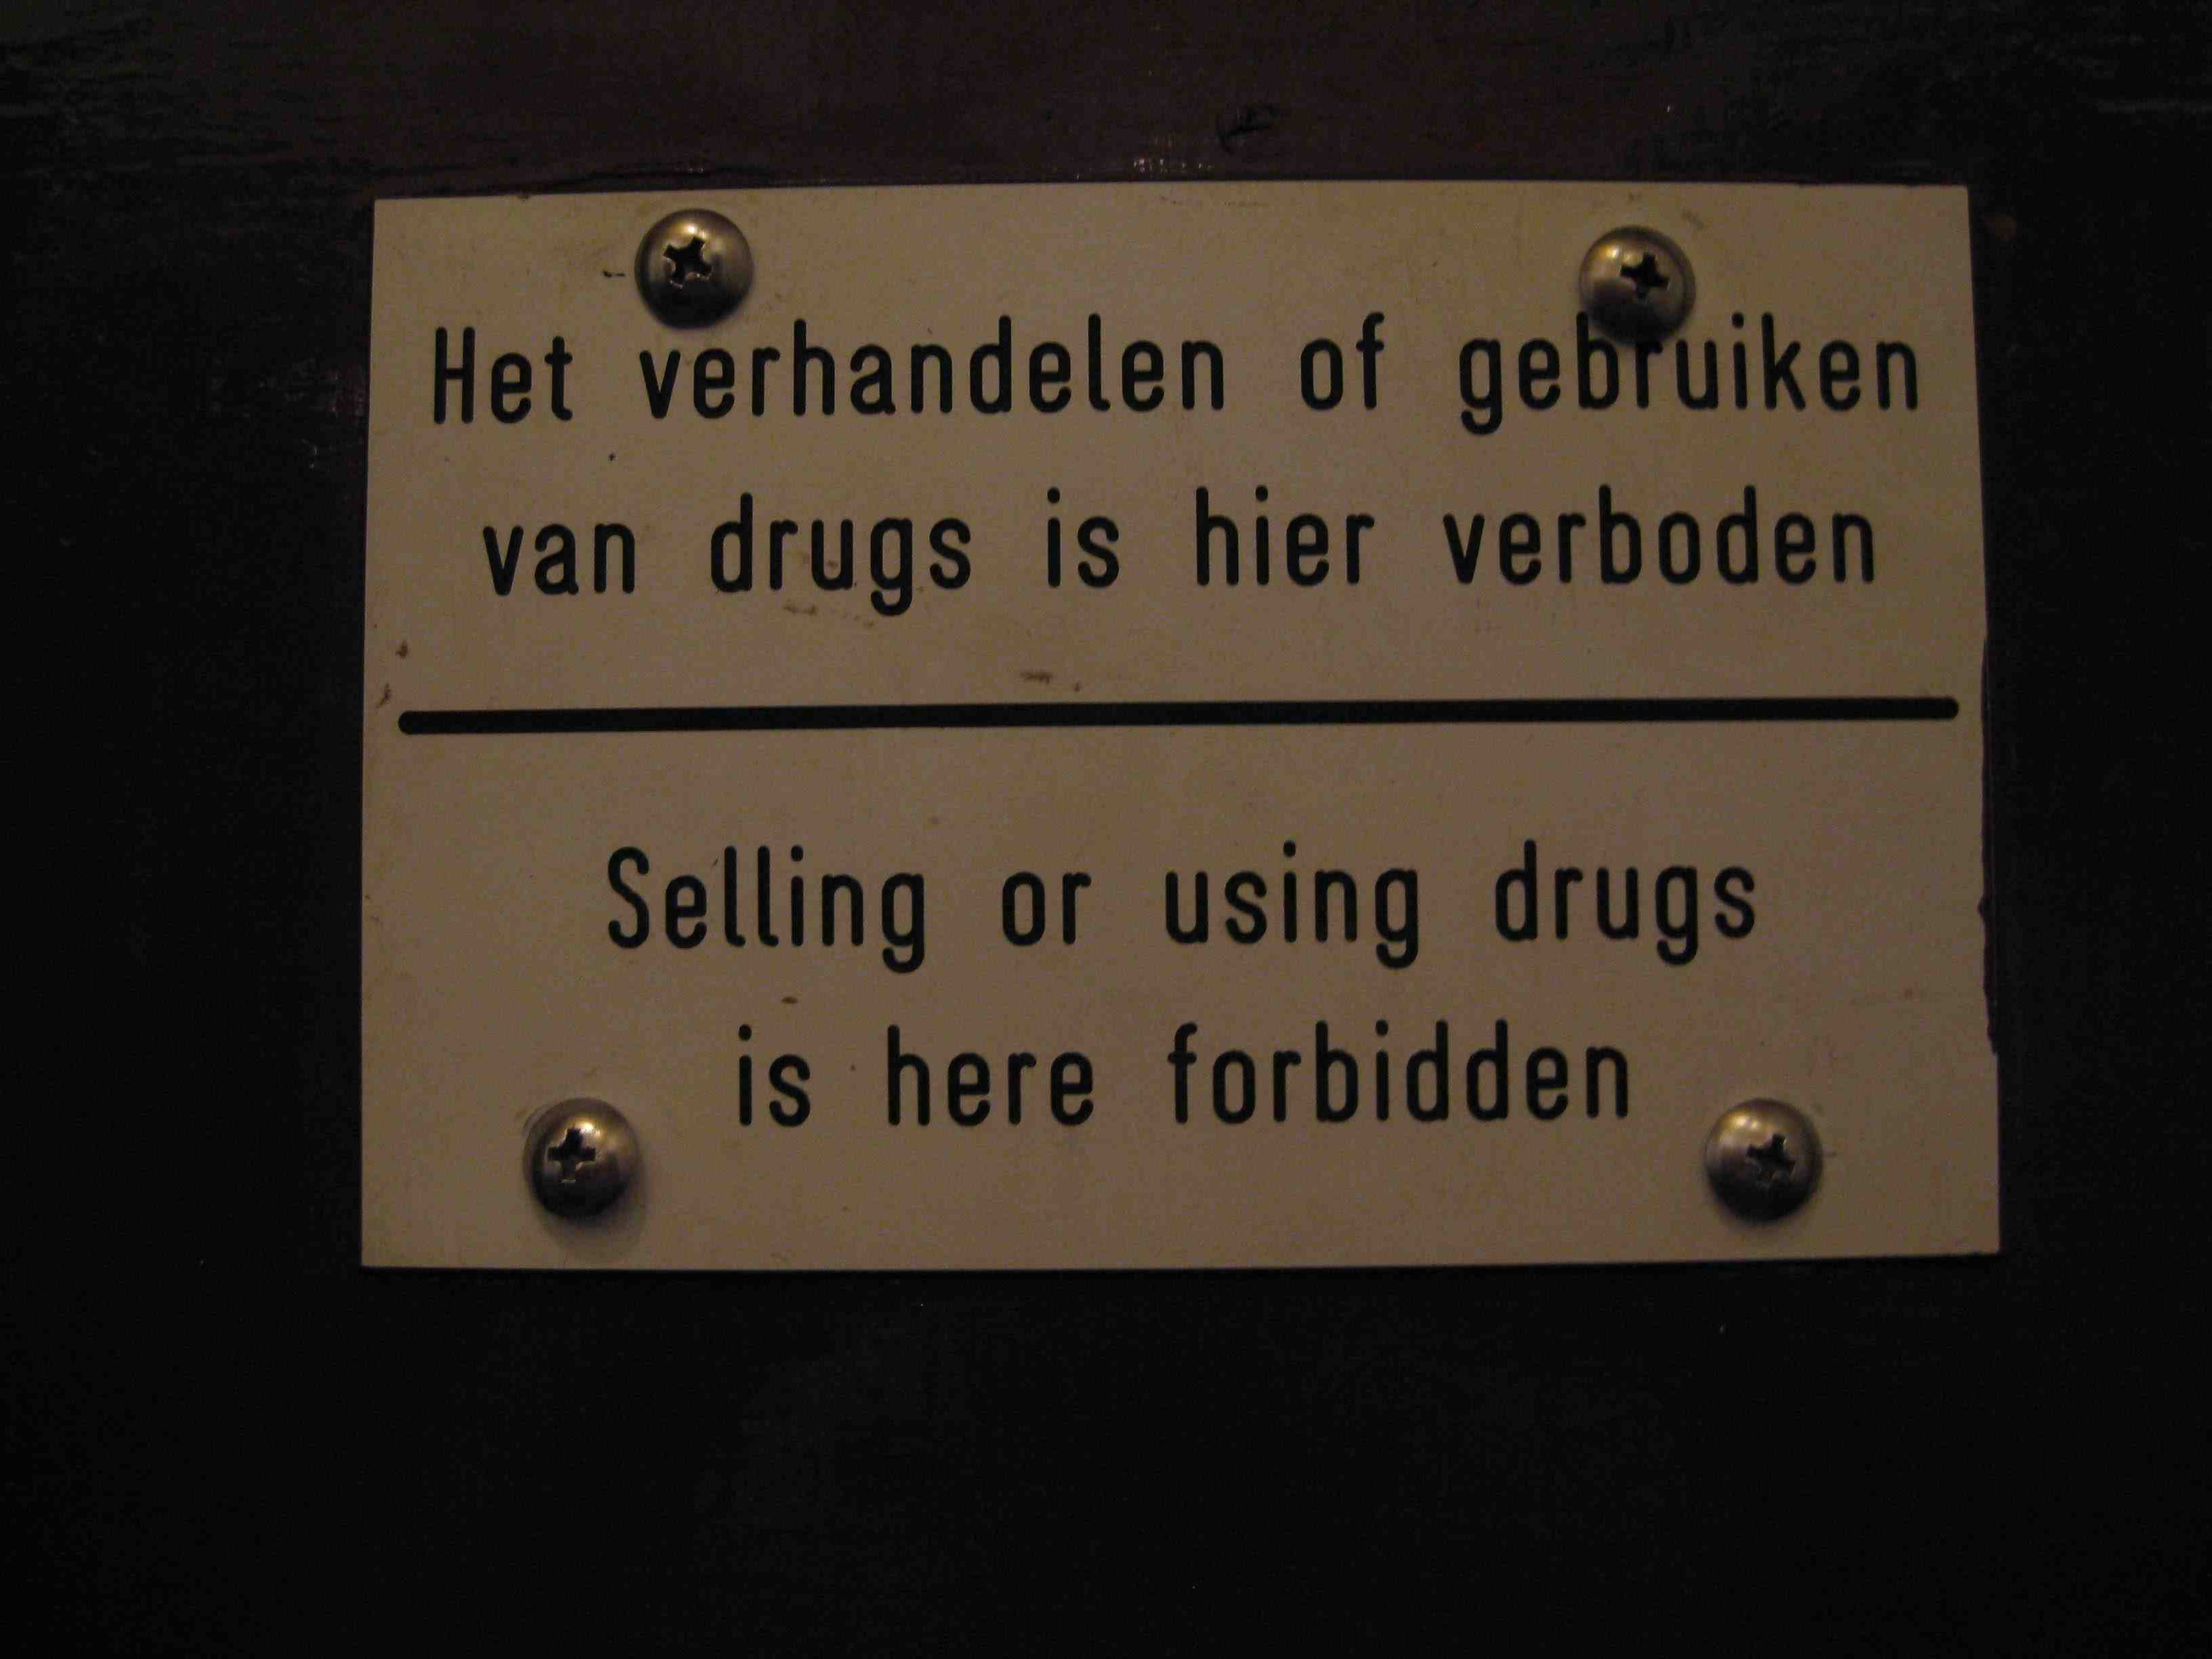 Bonaire - Little Havana - Selling or using drugs is here forbidden